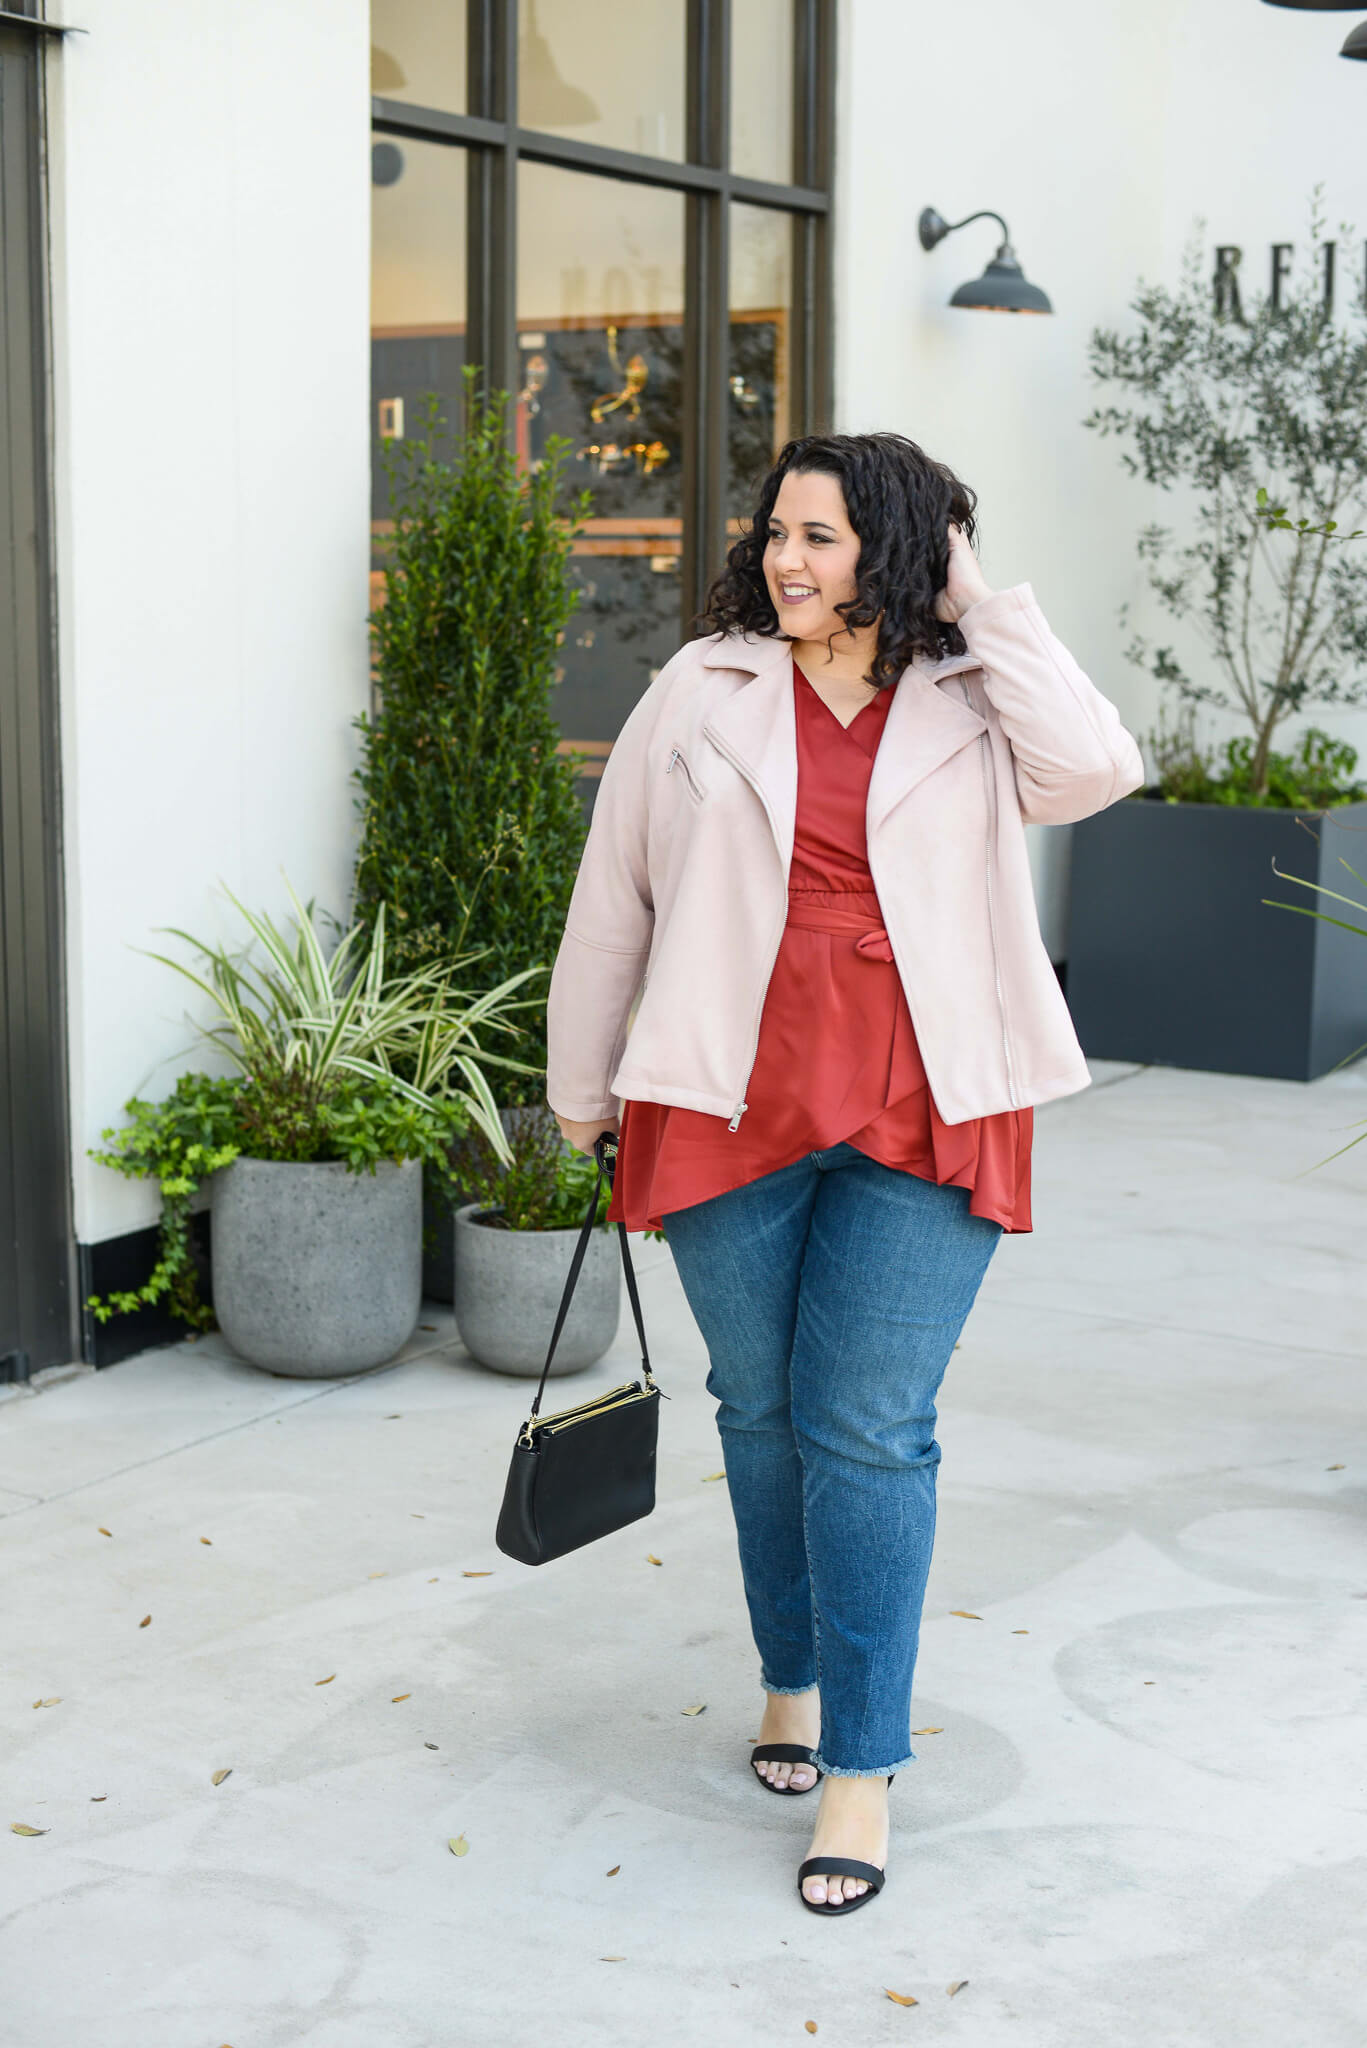 What to wear to date night plus size